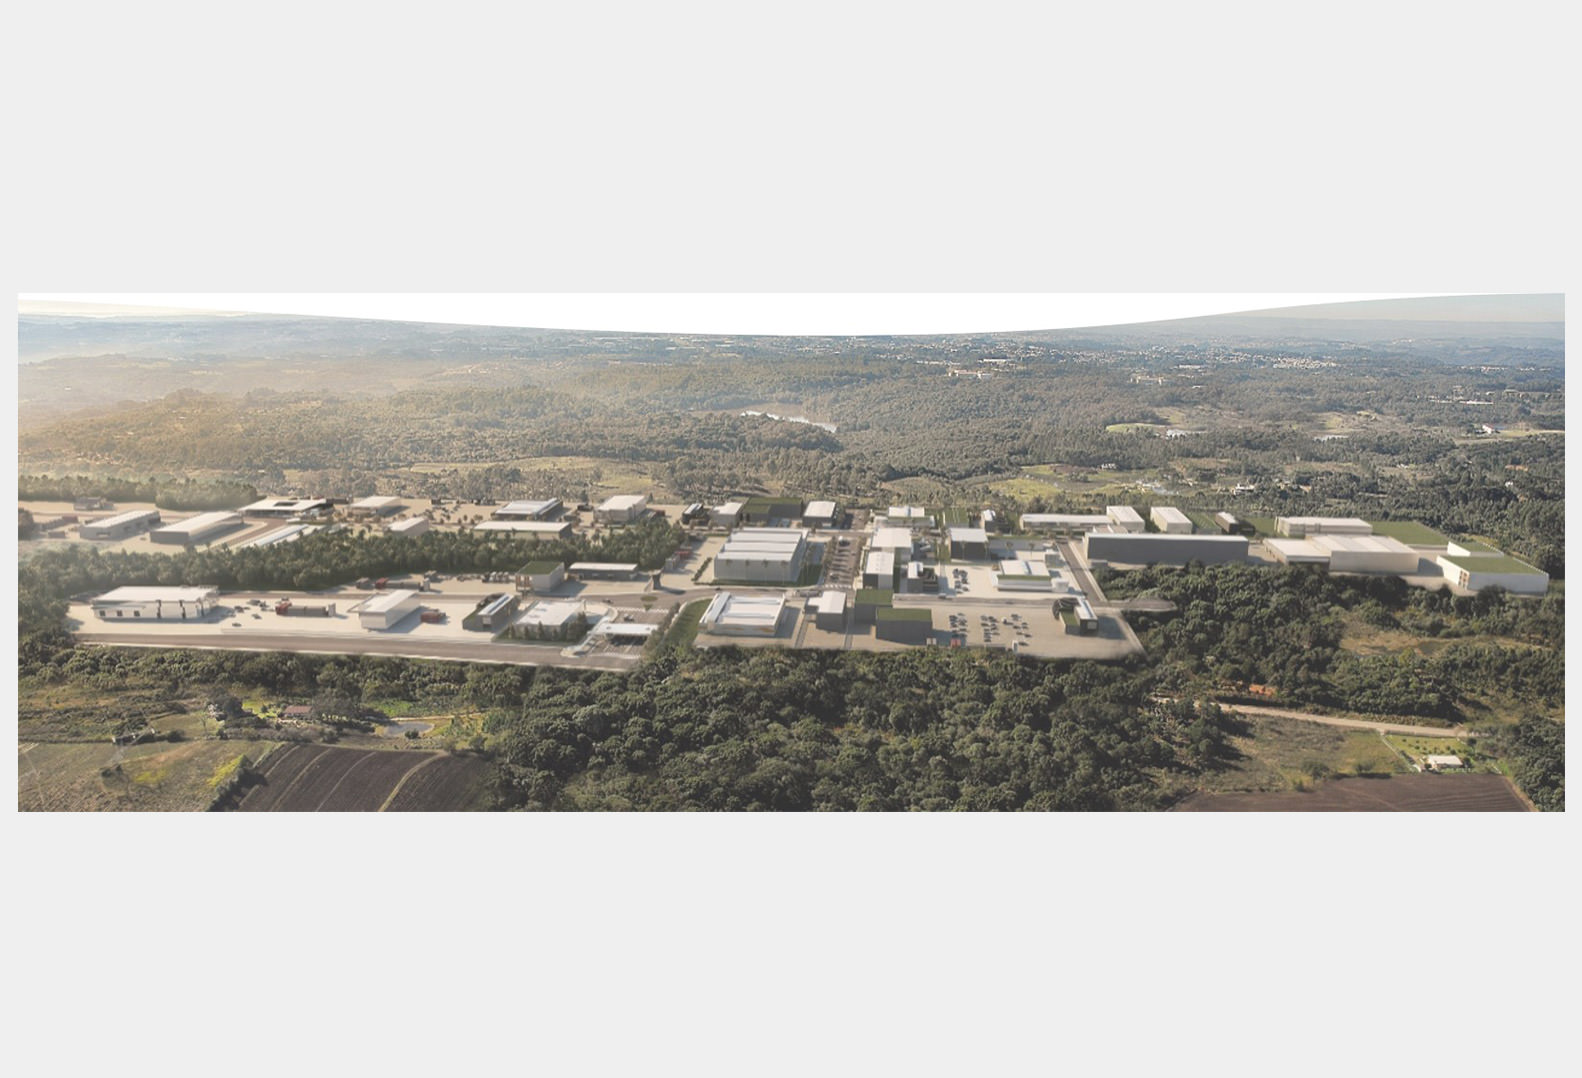 Drone view of the Greentec Sustainable Industrial Center